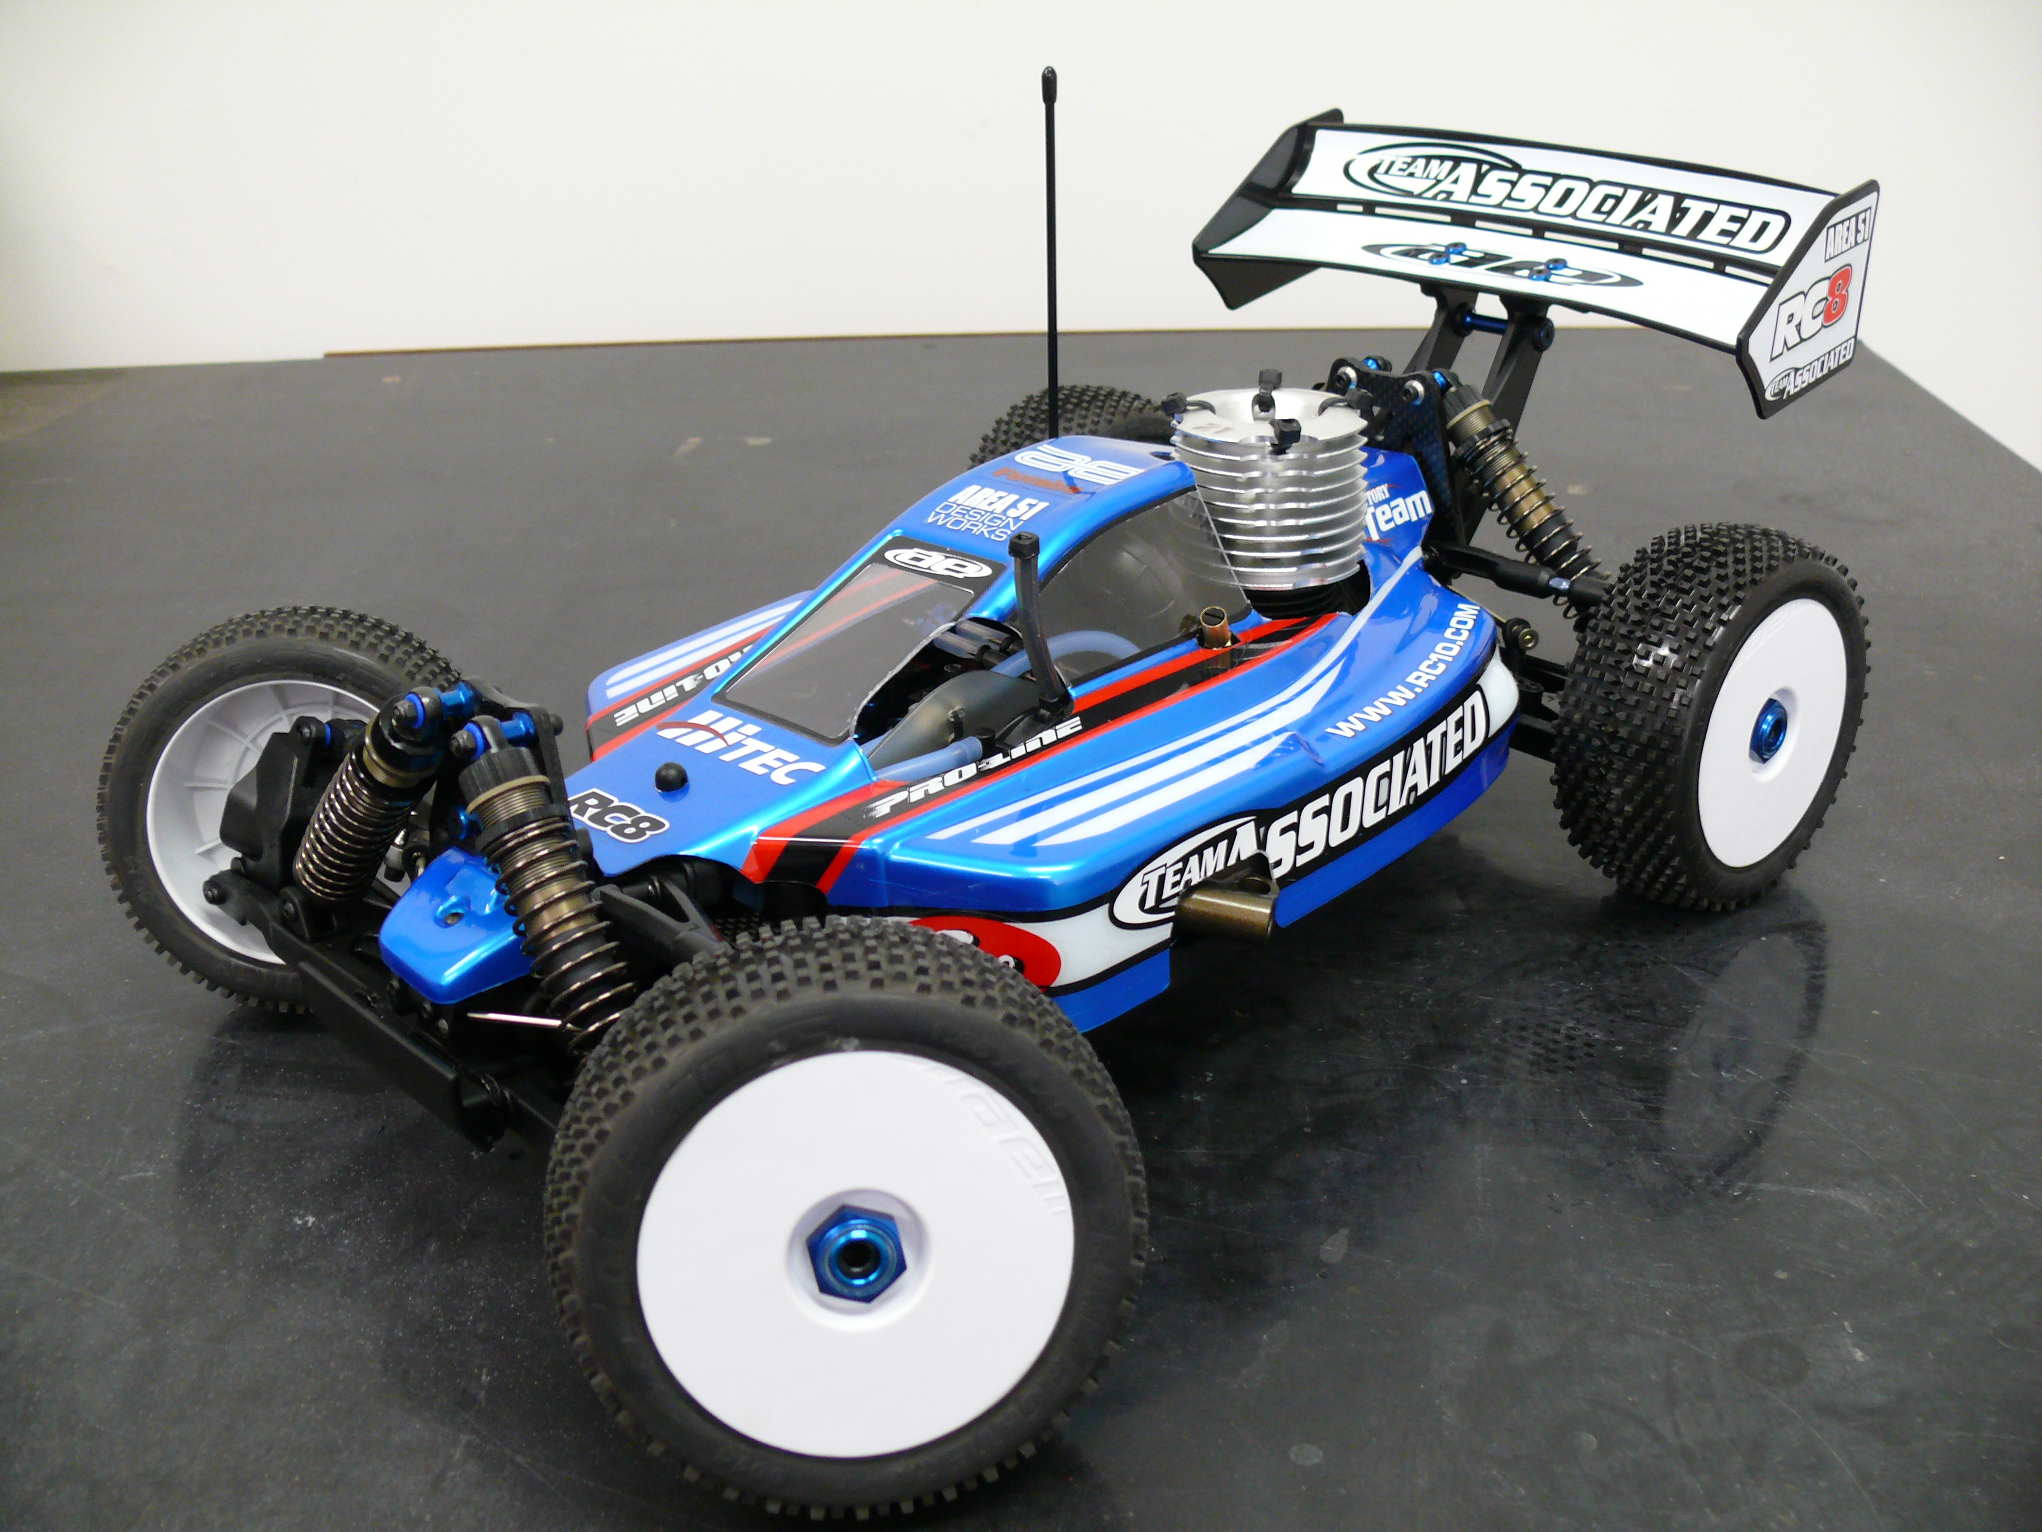 Nitro Rc Cars For Sale Petrol Rc Cars For Sale